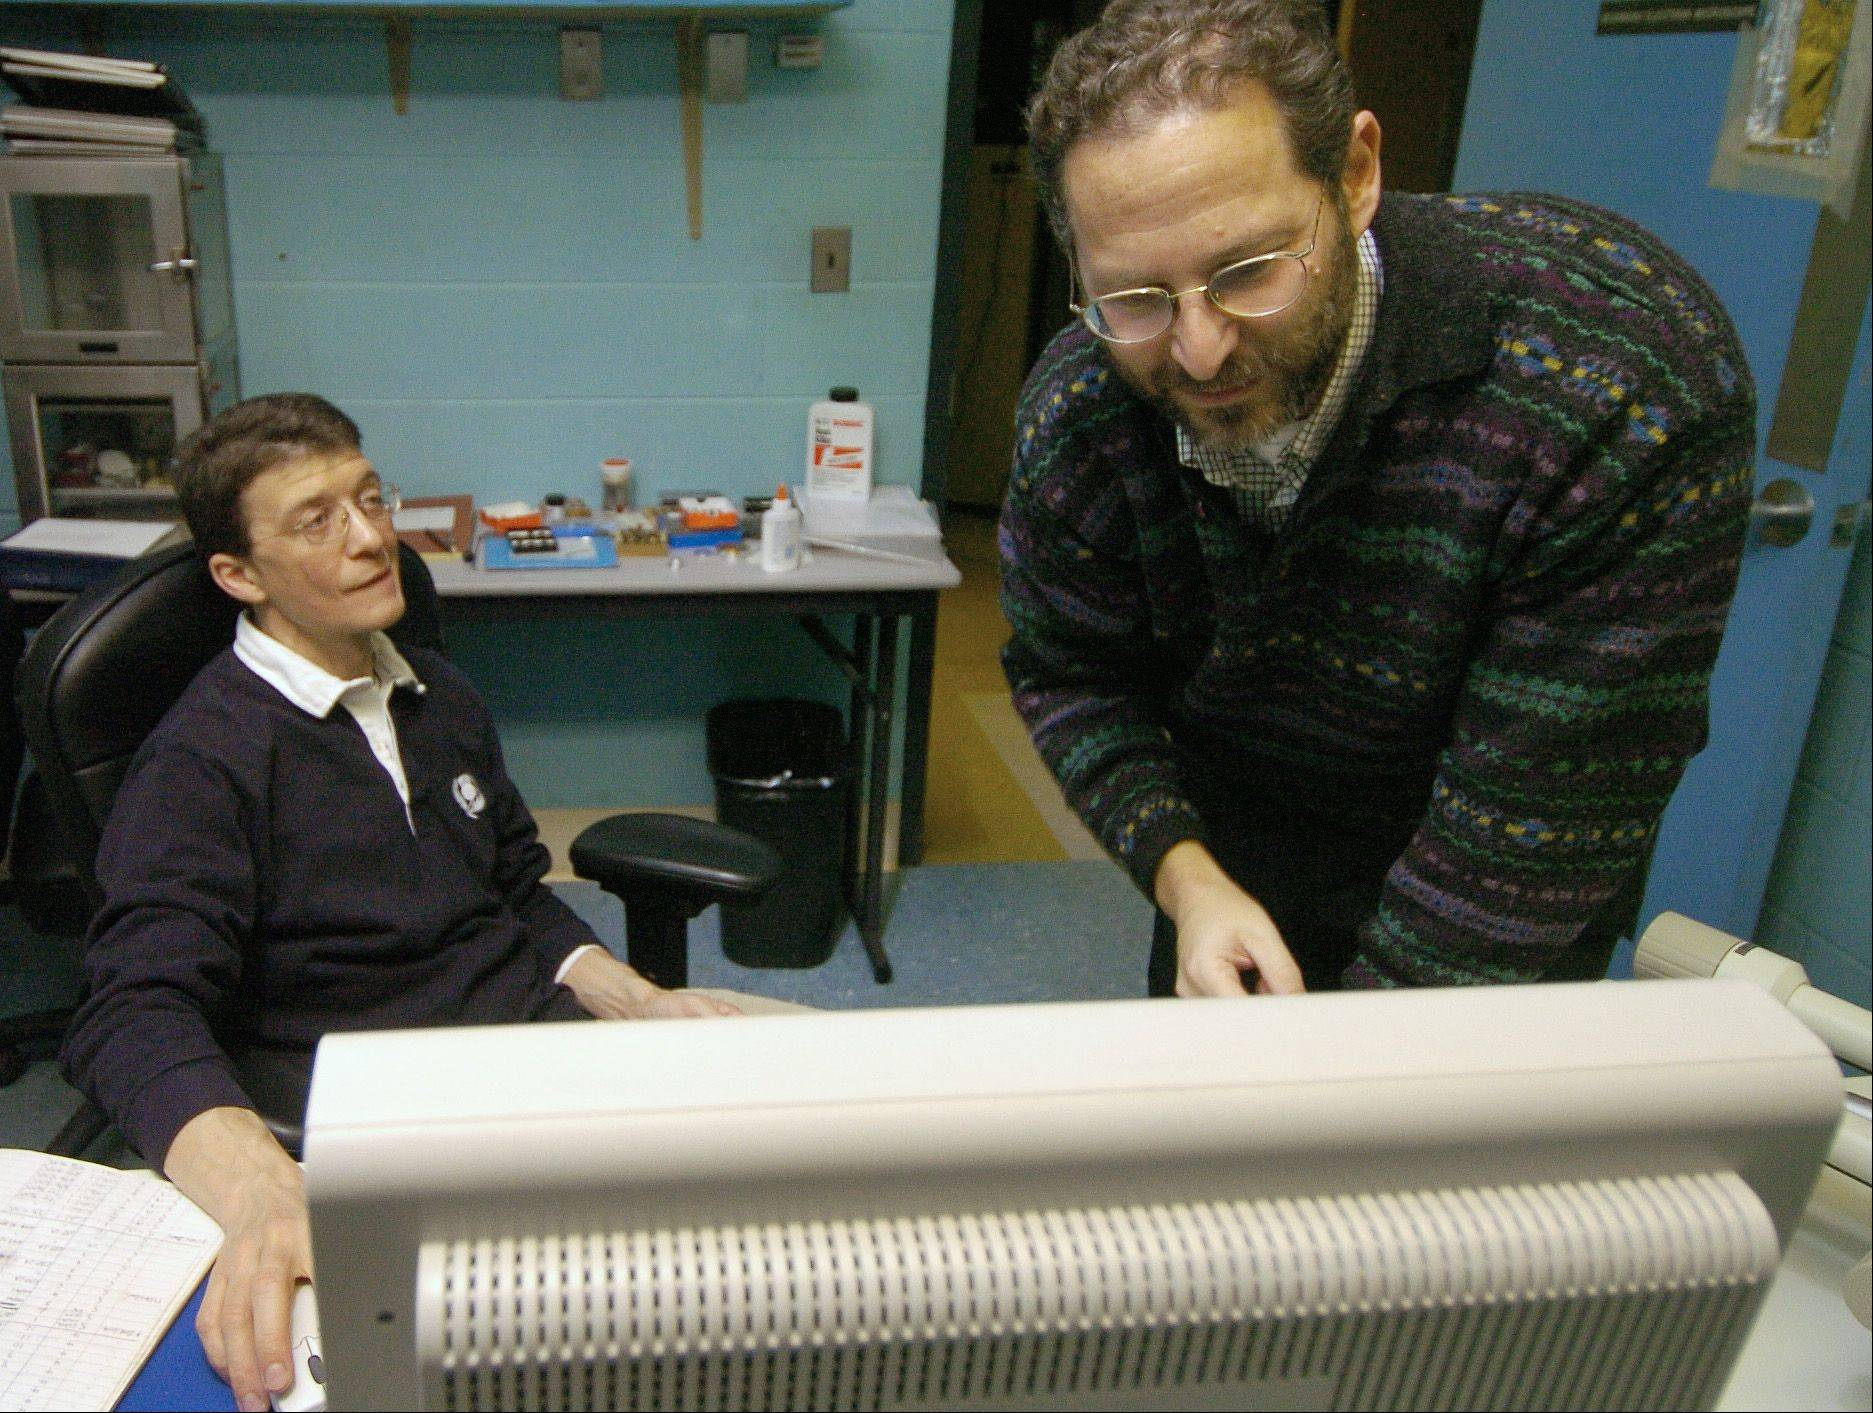 Northern Illinois University geology professor Reed Scherer, right and phD cadidate Matt Olmey examine an image of a single-celled organism gathered in an Antactic core sample. They will spend two months in Antarctica drilling core samples they will use to determine the earth's climate millions of years ago.